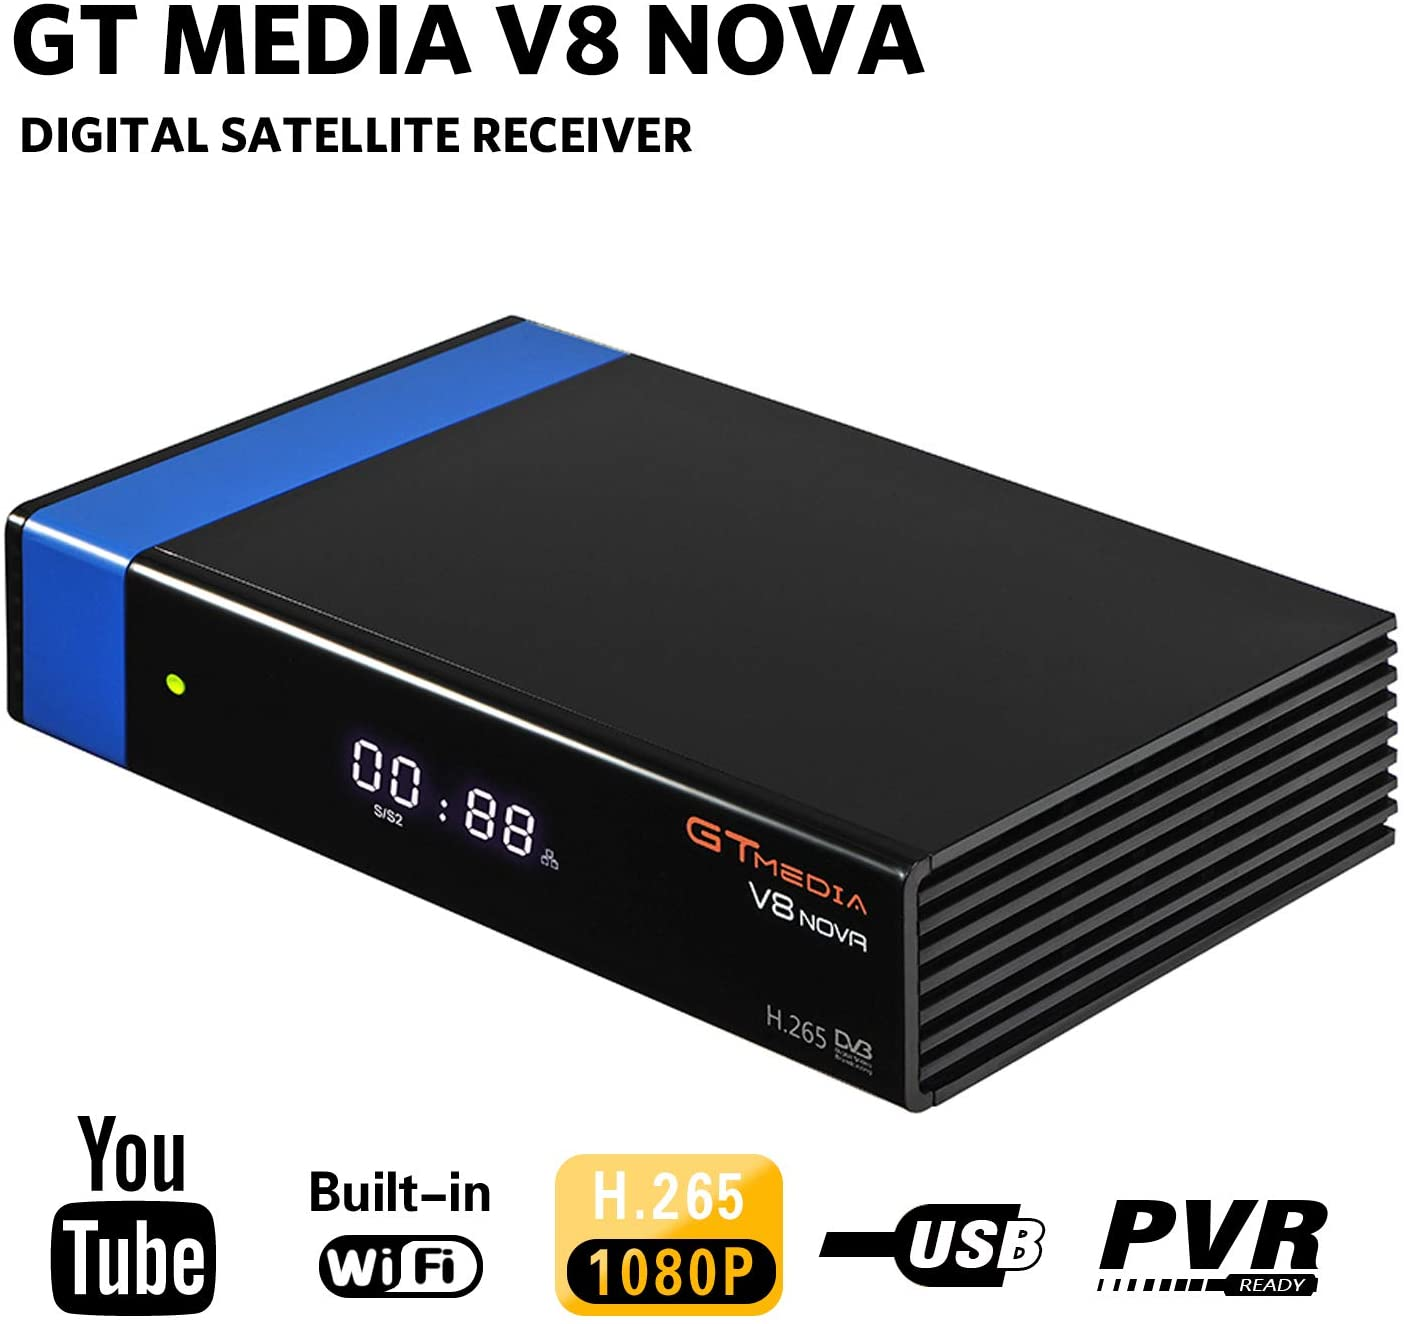 GTMEDIA V8 Nova DVB S2 TV ricevitore satellitare Satellite decoder Support 1080P Full HD PowerVu Biss chiave Newca CC CAM Set-Top Box, con Built-in WiFi - Azul